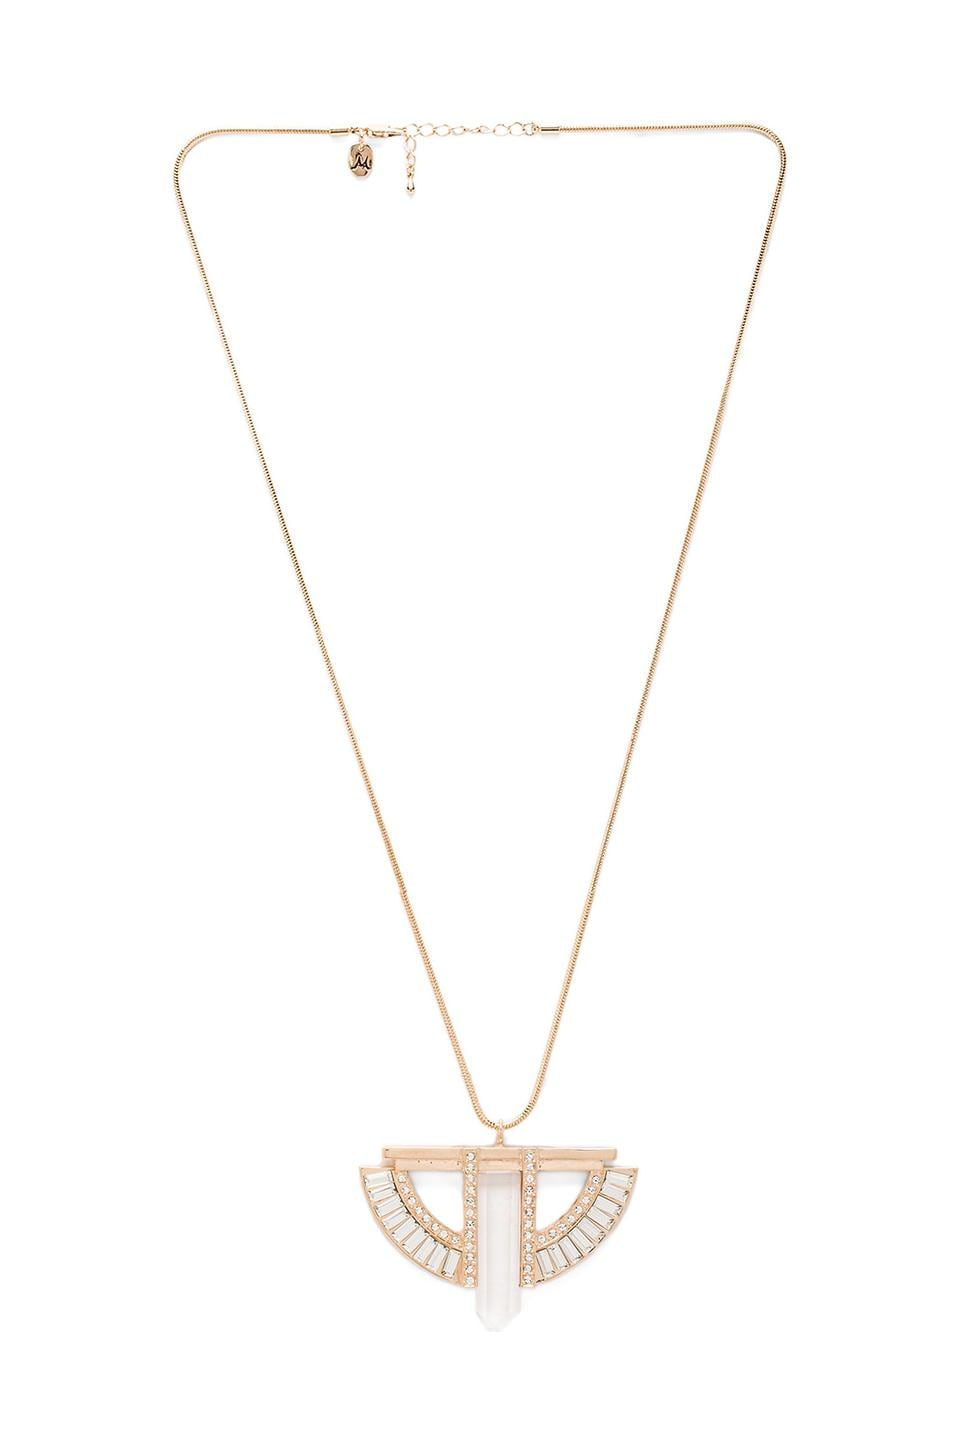 Nicole Meng Architecture Necklace in Gold/Crystal